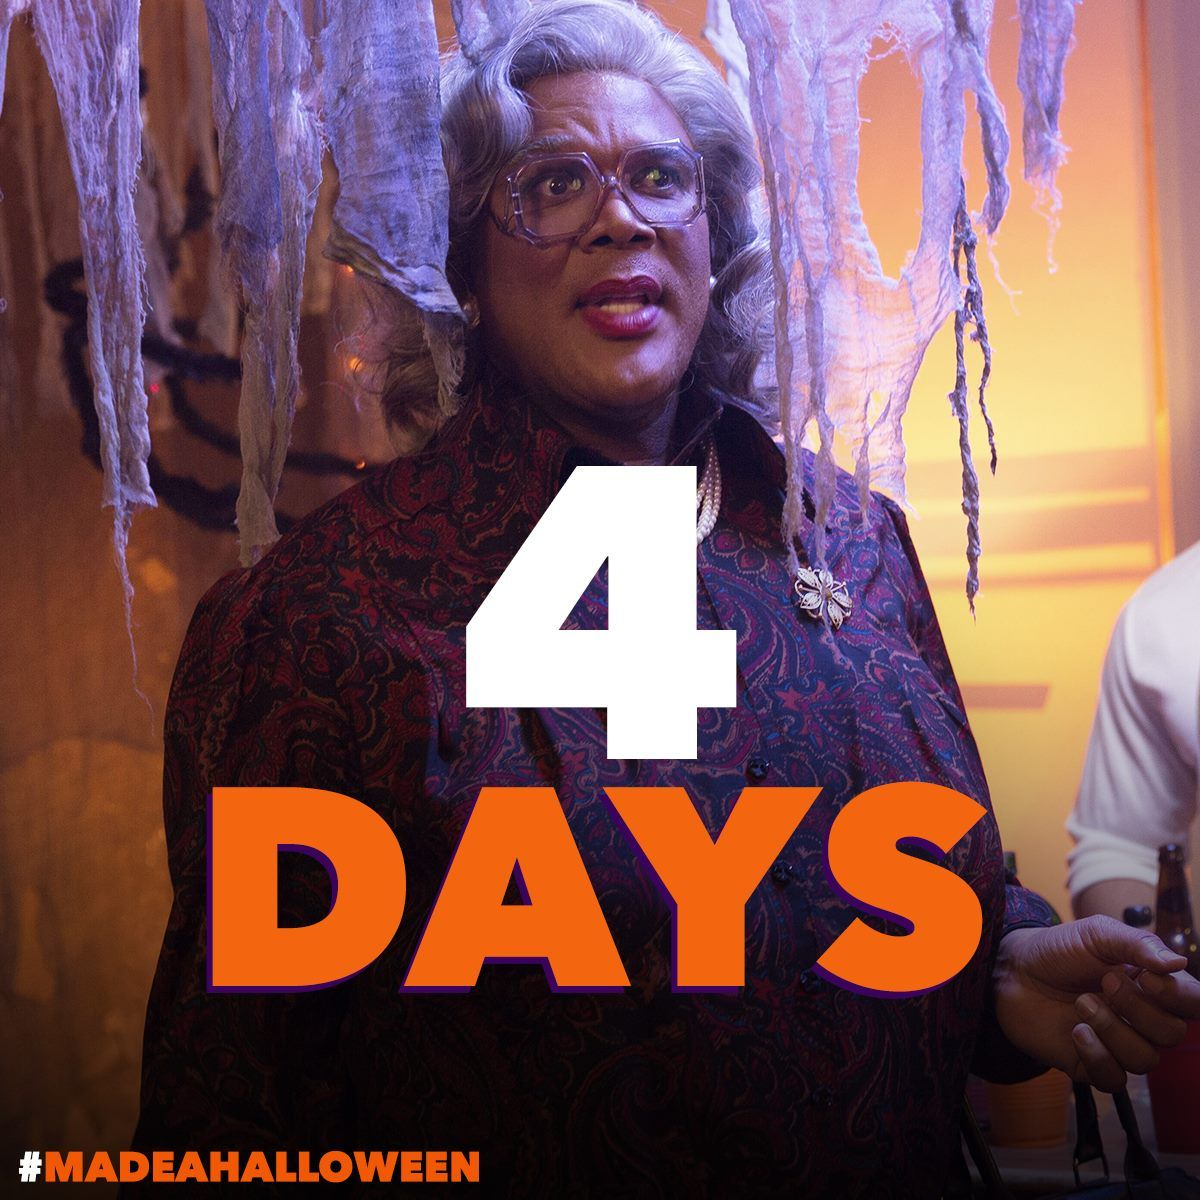 In 4 DAYS, prepare to get silly scared with Tyler Perry's